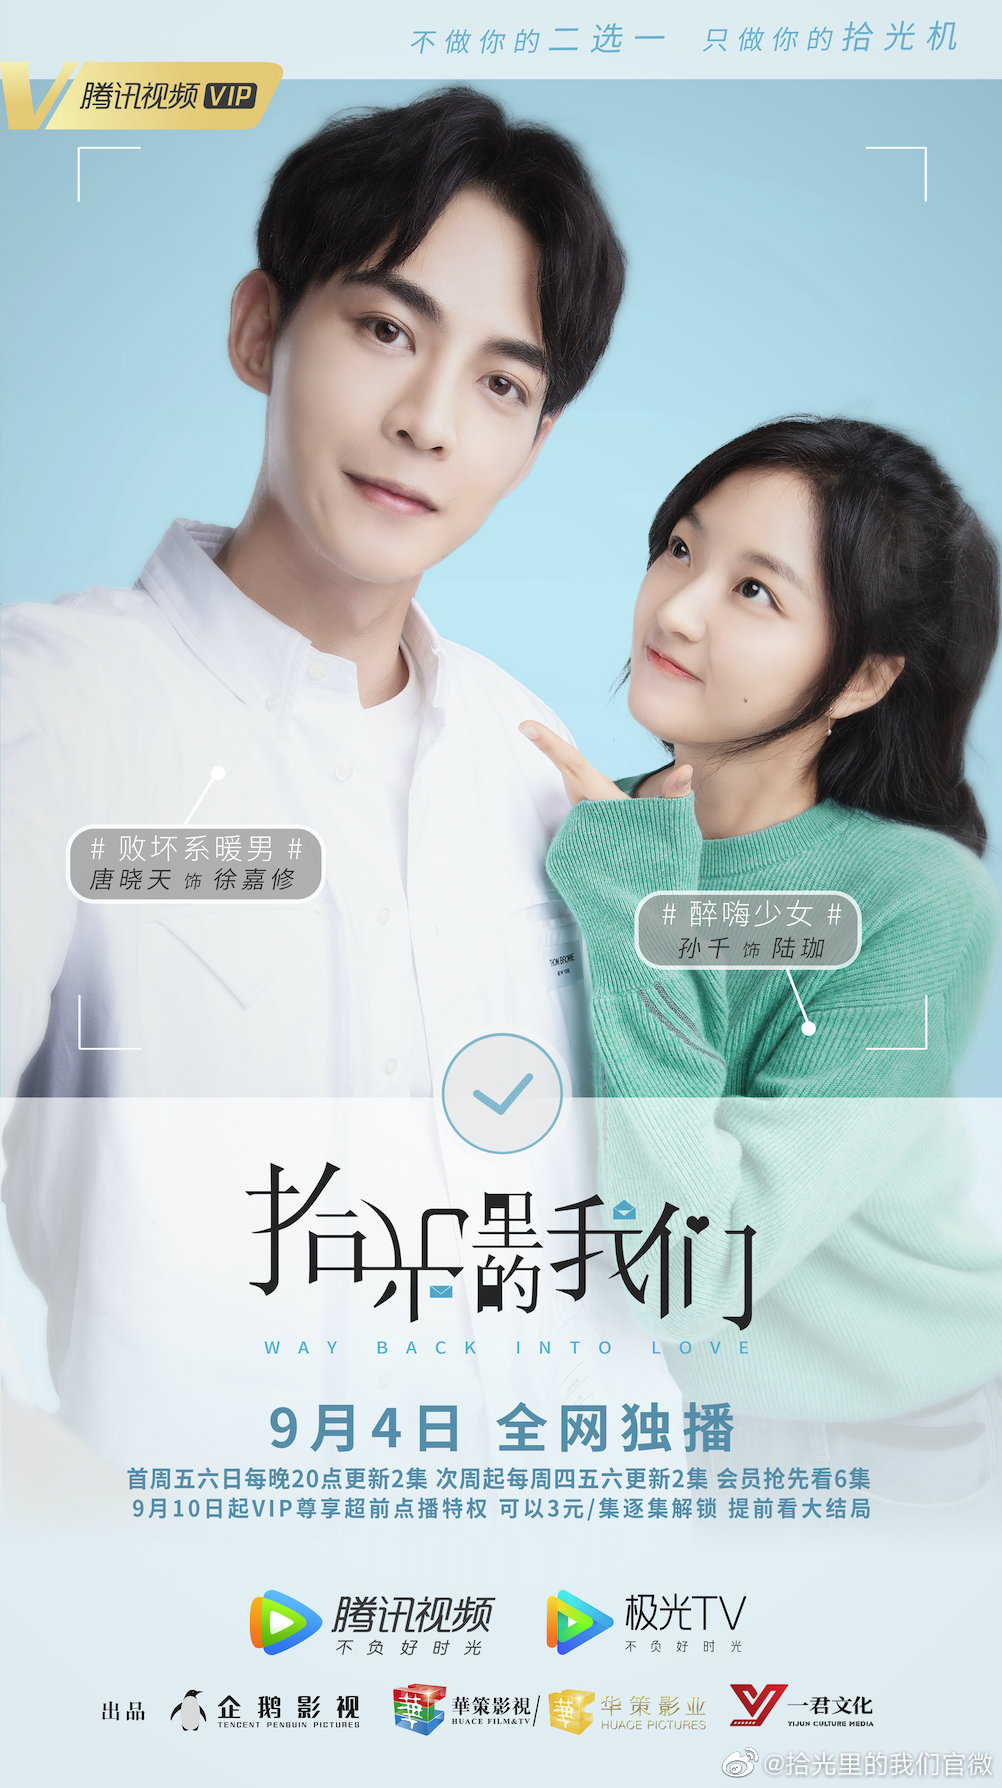 Way Back Into Love Chinese Drama Poster